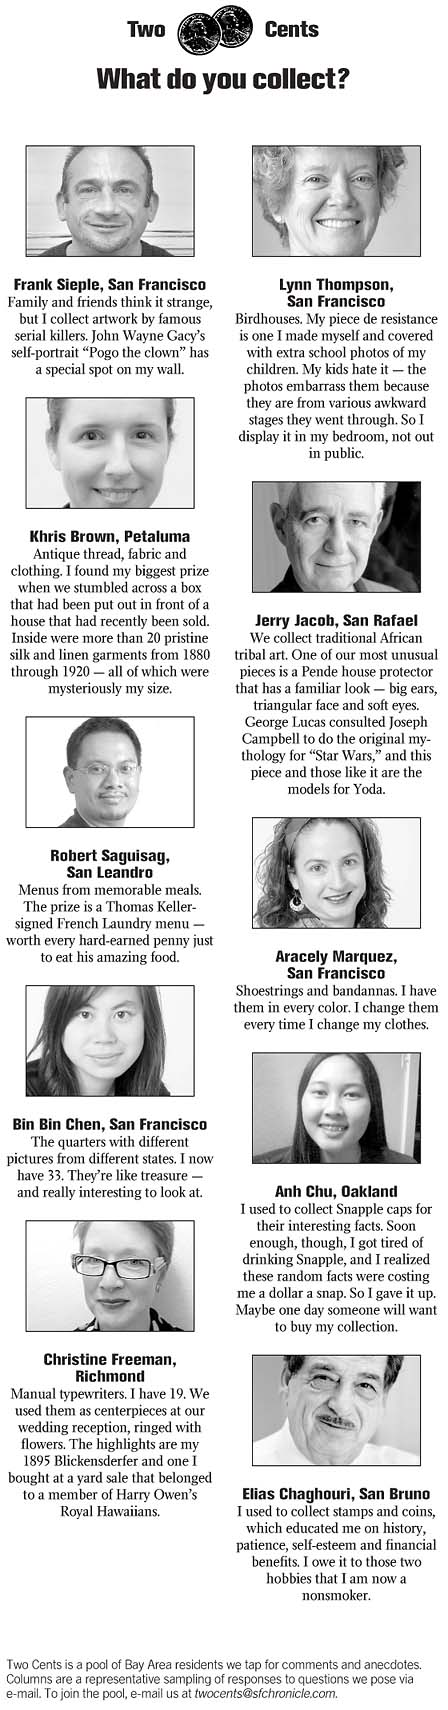 TWO CENTS / What do you collect? - SFGate